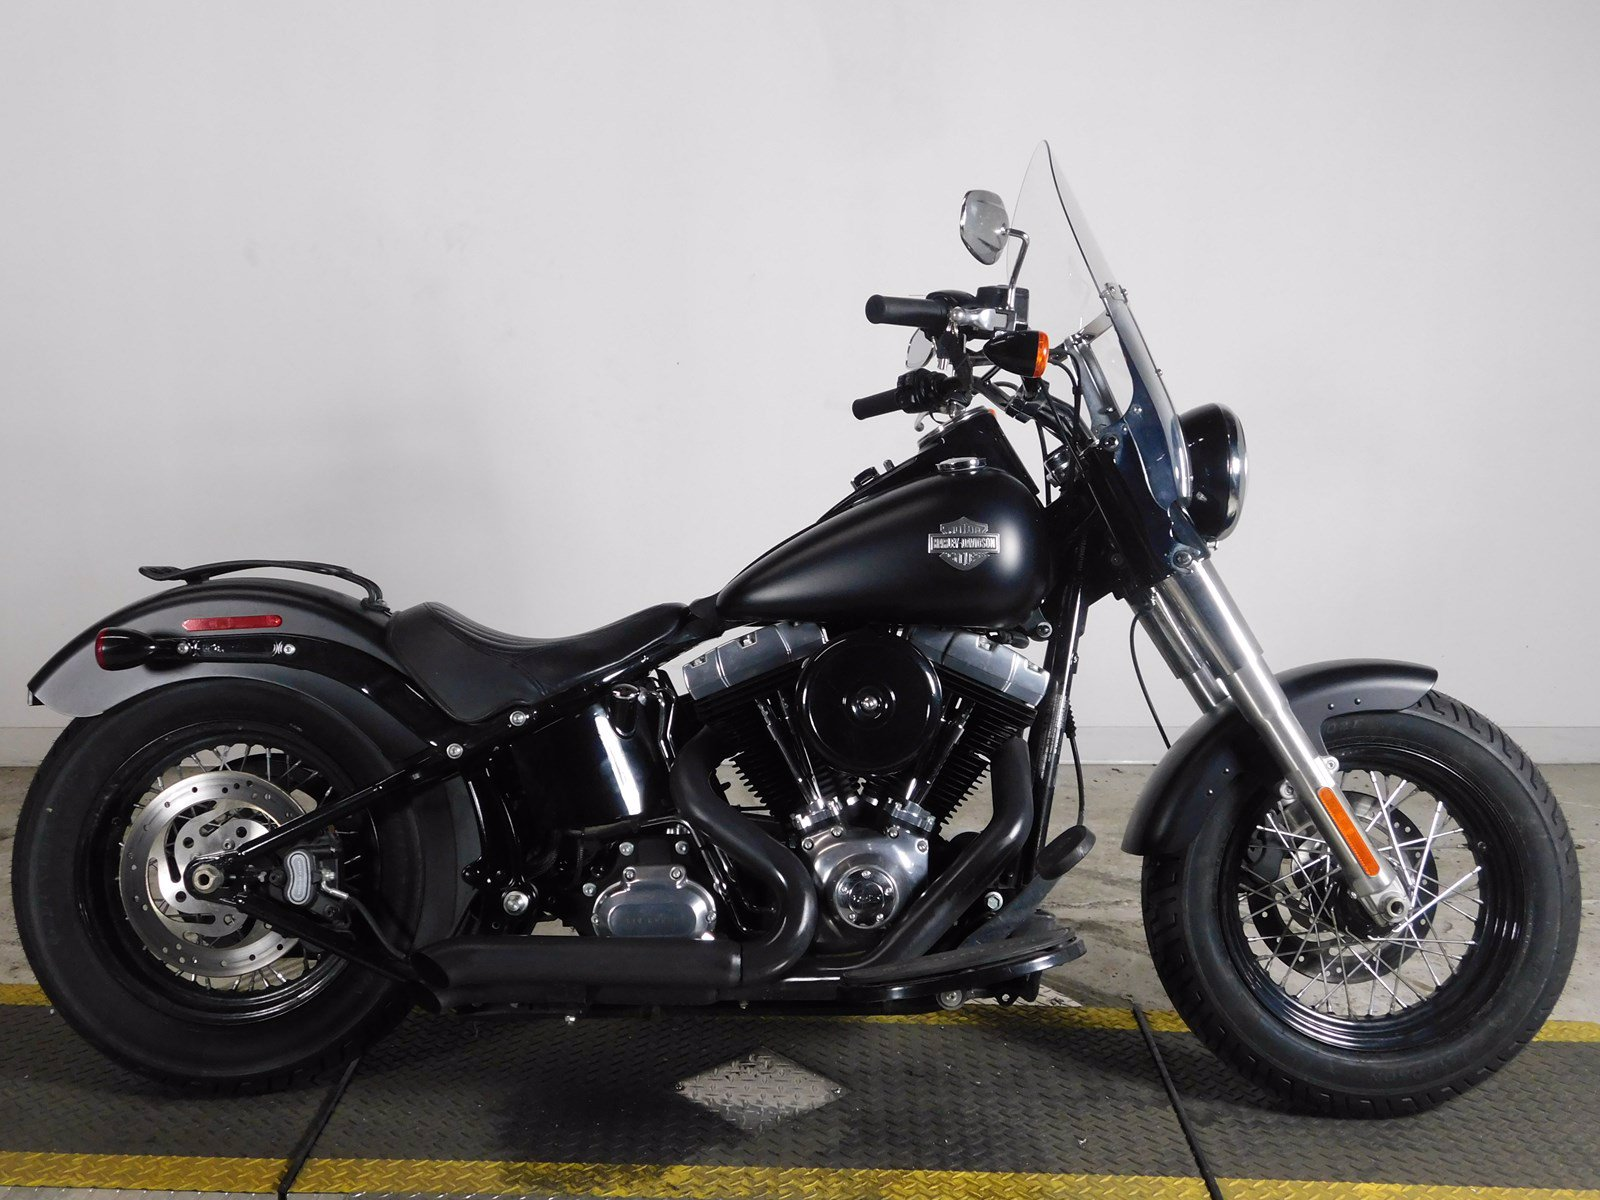 Pre-Owned 2013 Harley-Davidson Softail Slim FLS